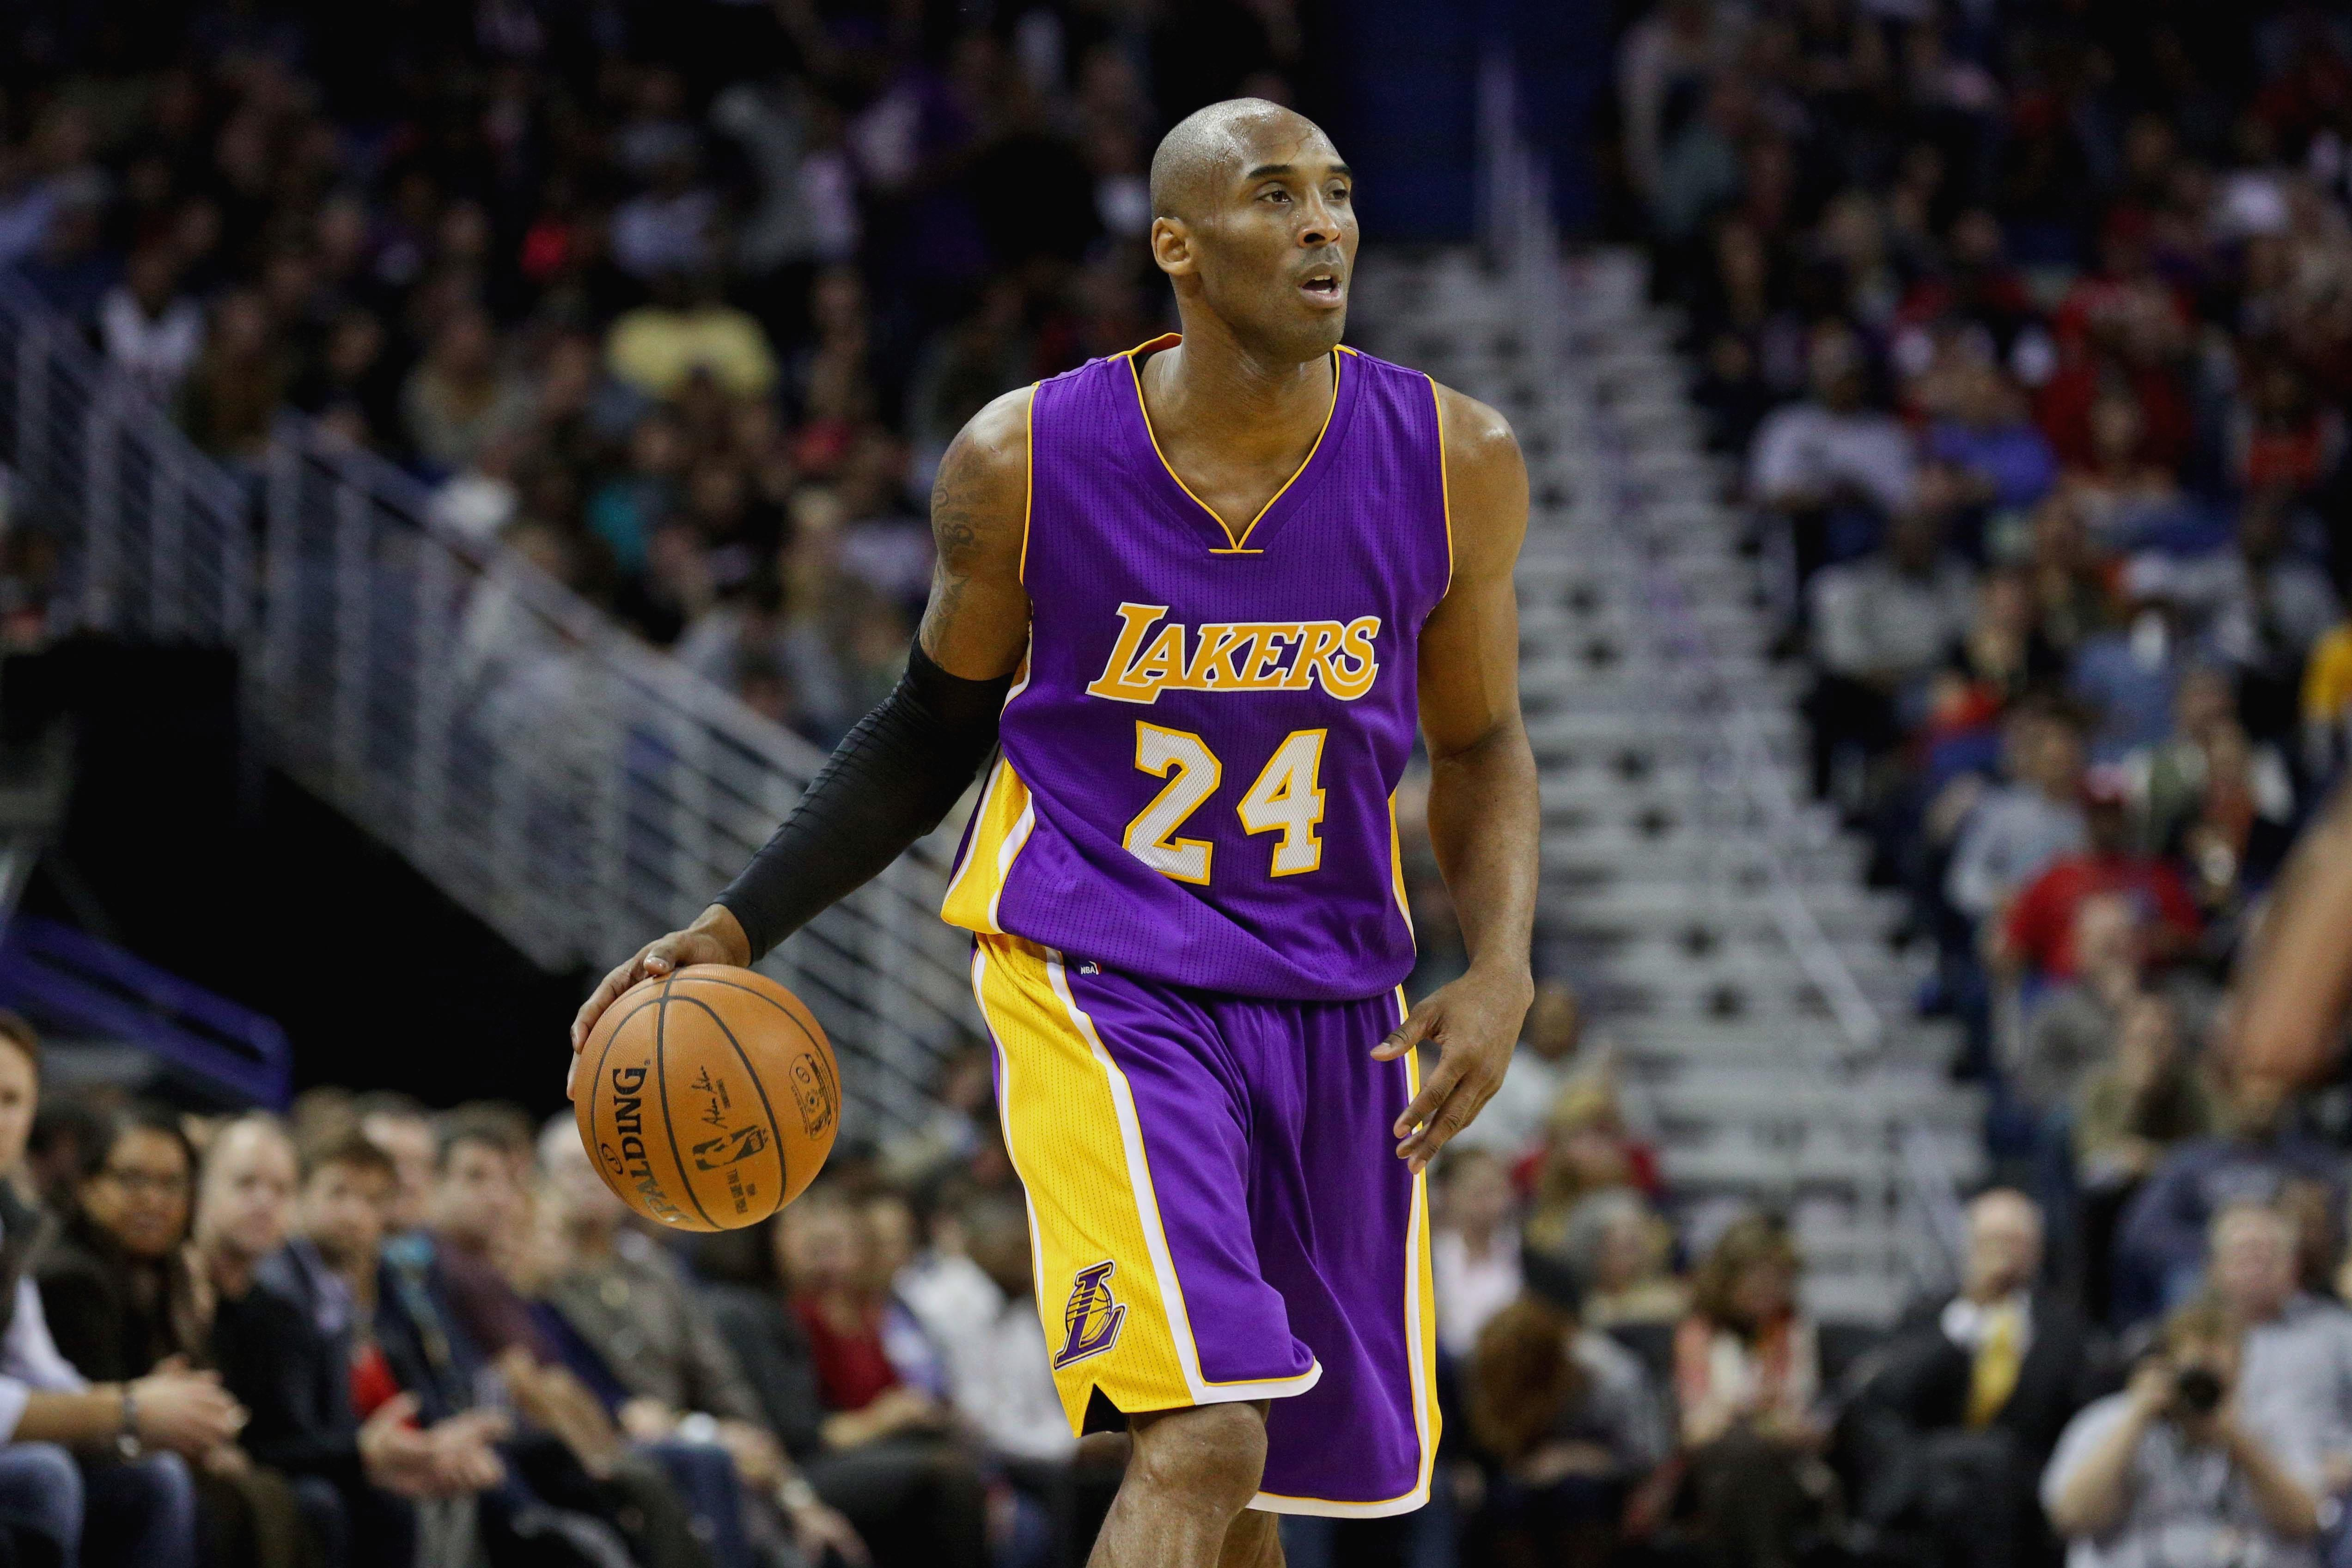 Kobe bryant wallpaper hd download - Kobe bryant wallpaper free download ...